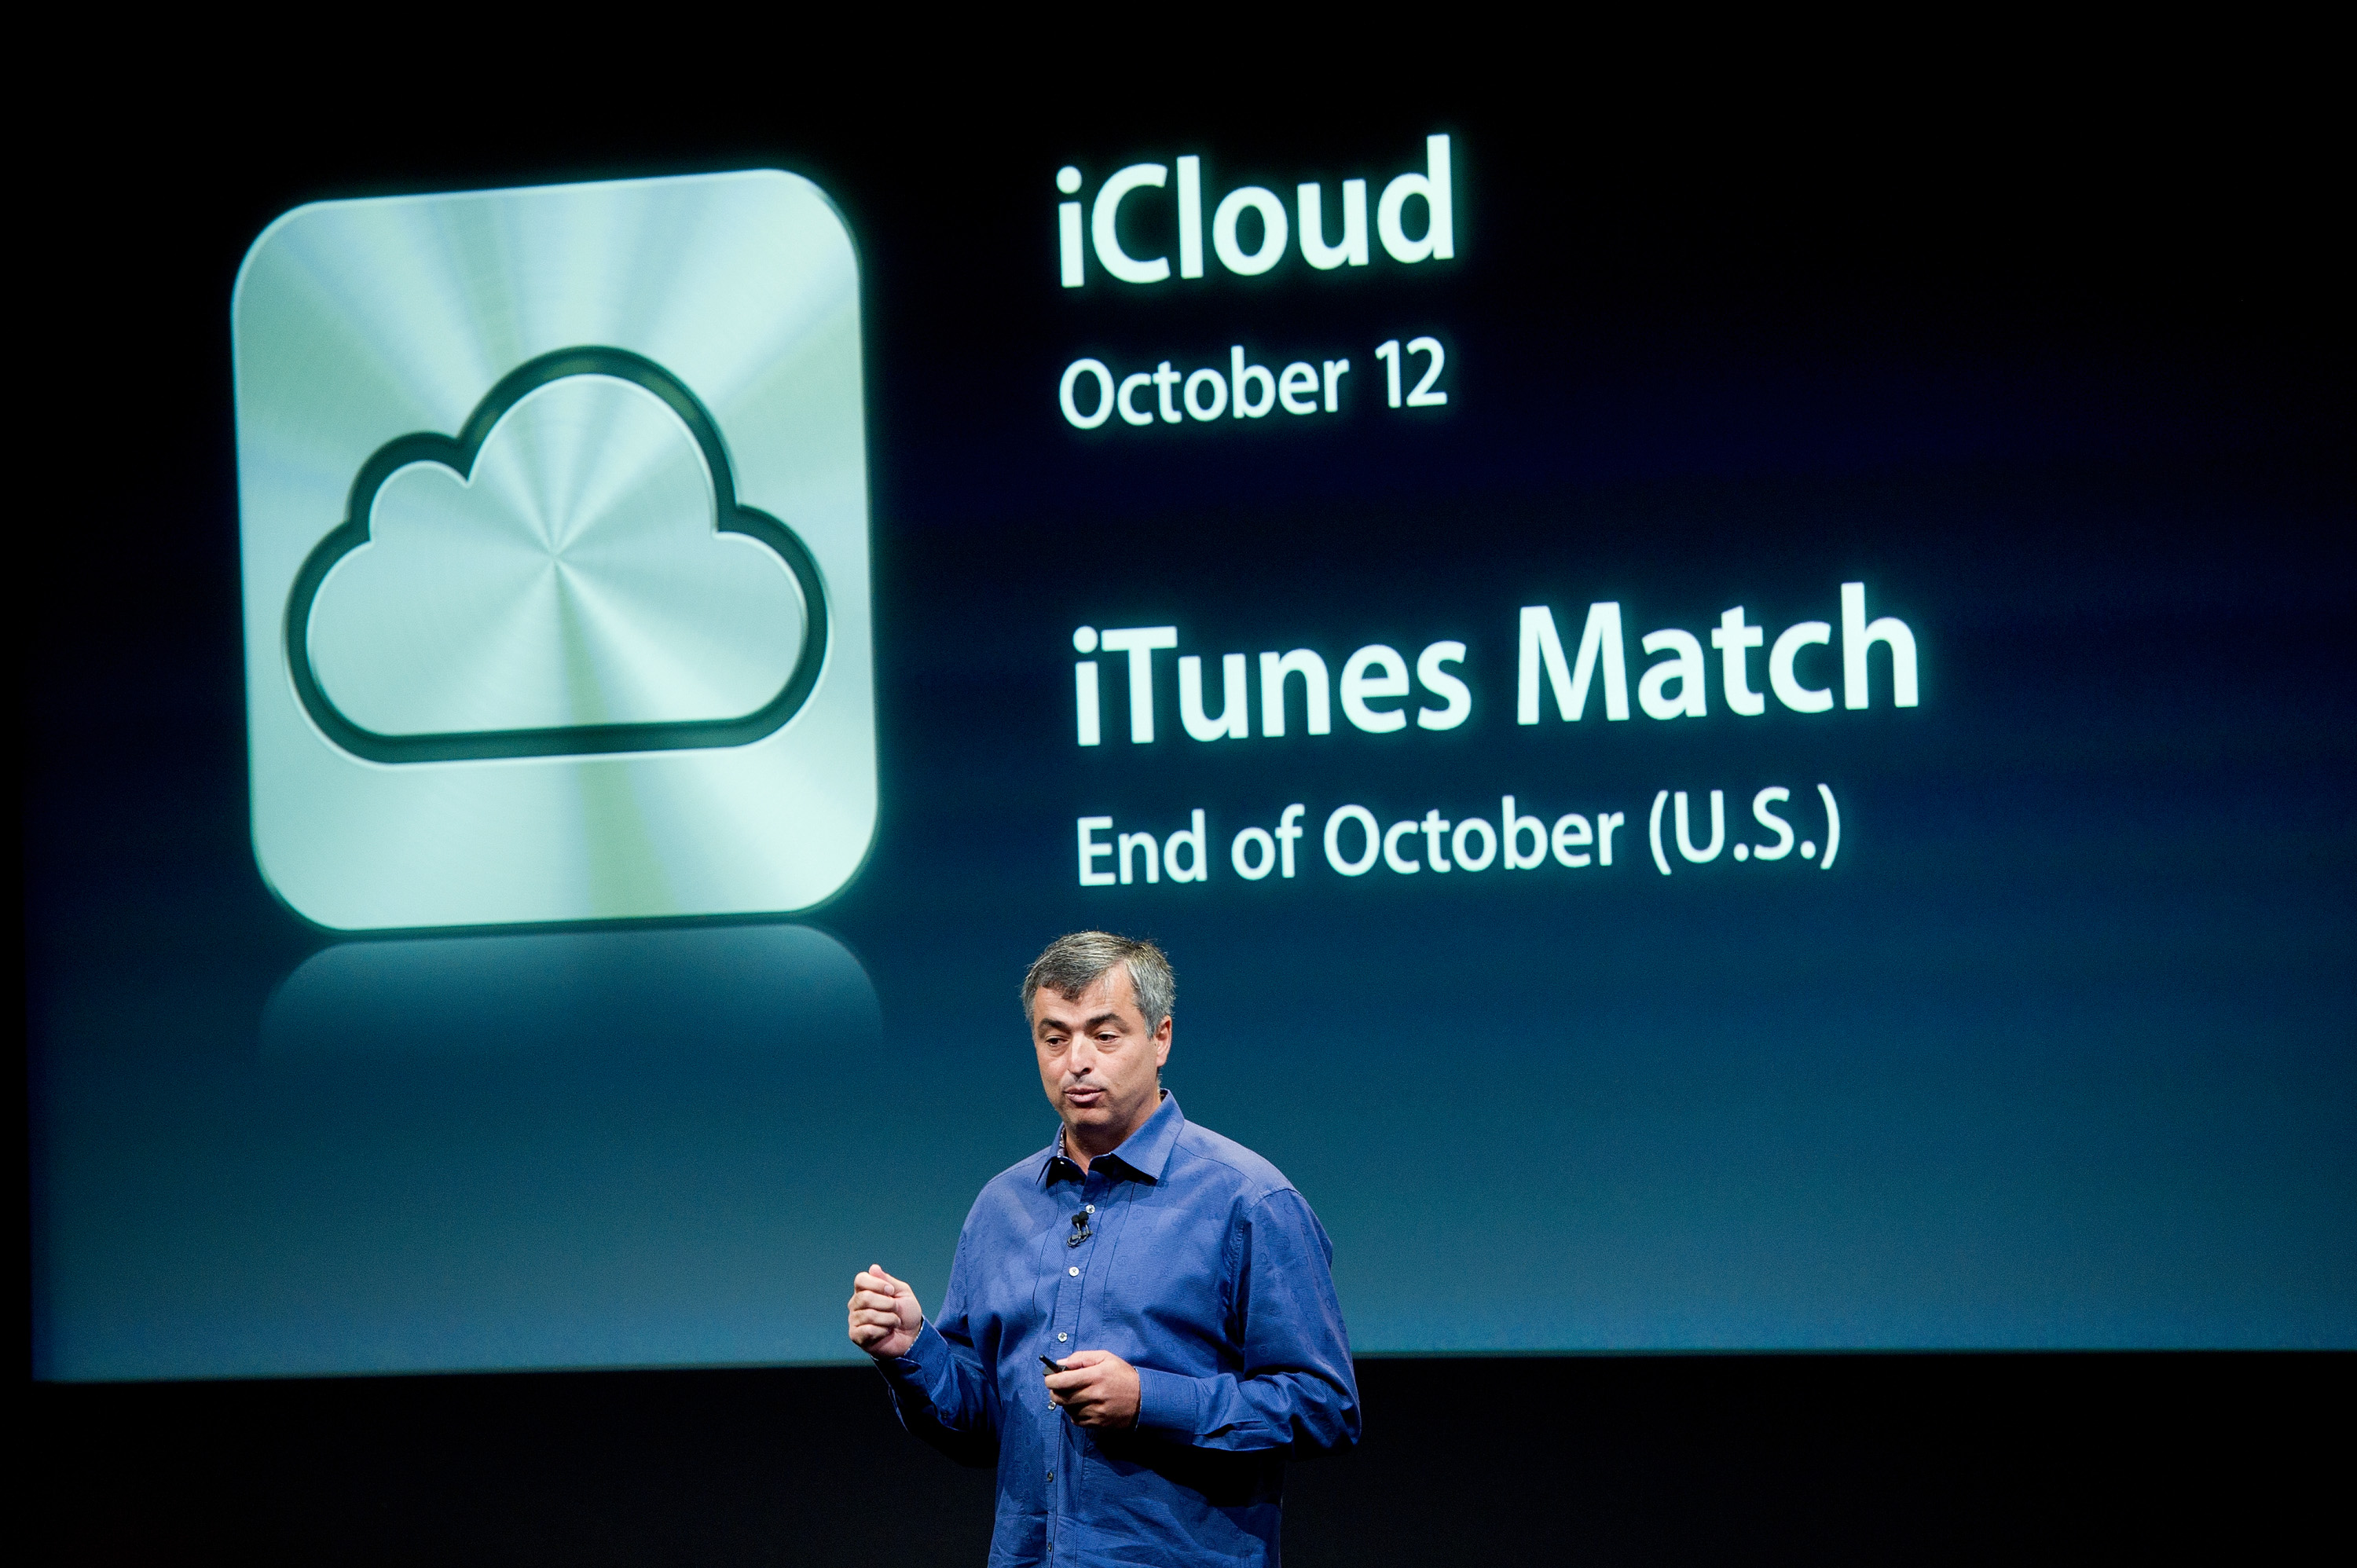 Eddie Cue, senior vice president of Internet Software and Services at Apple Inc., speaks about new features of the iCloud service during an event at the company's headquarters in Cupertino, California, U.S., on Tuesday, Oct. 4, 2011.